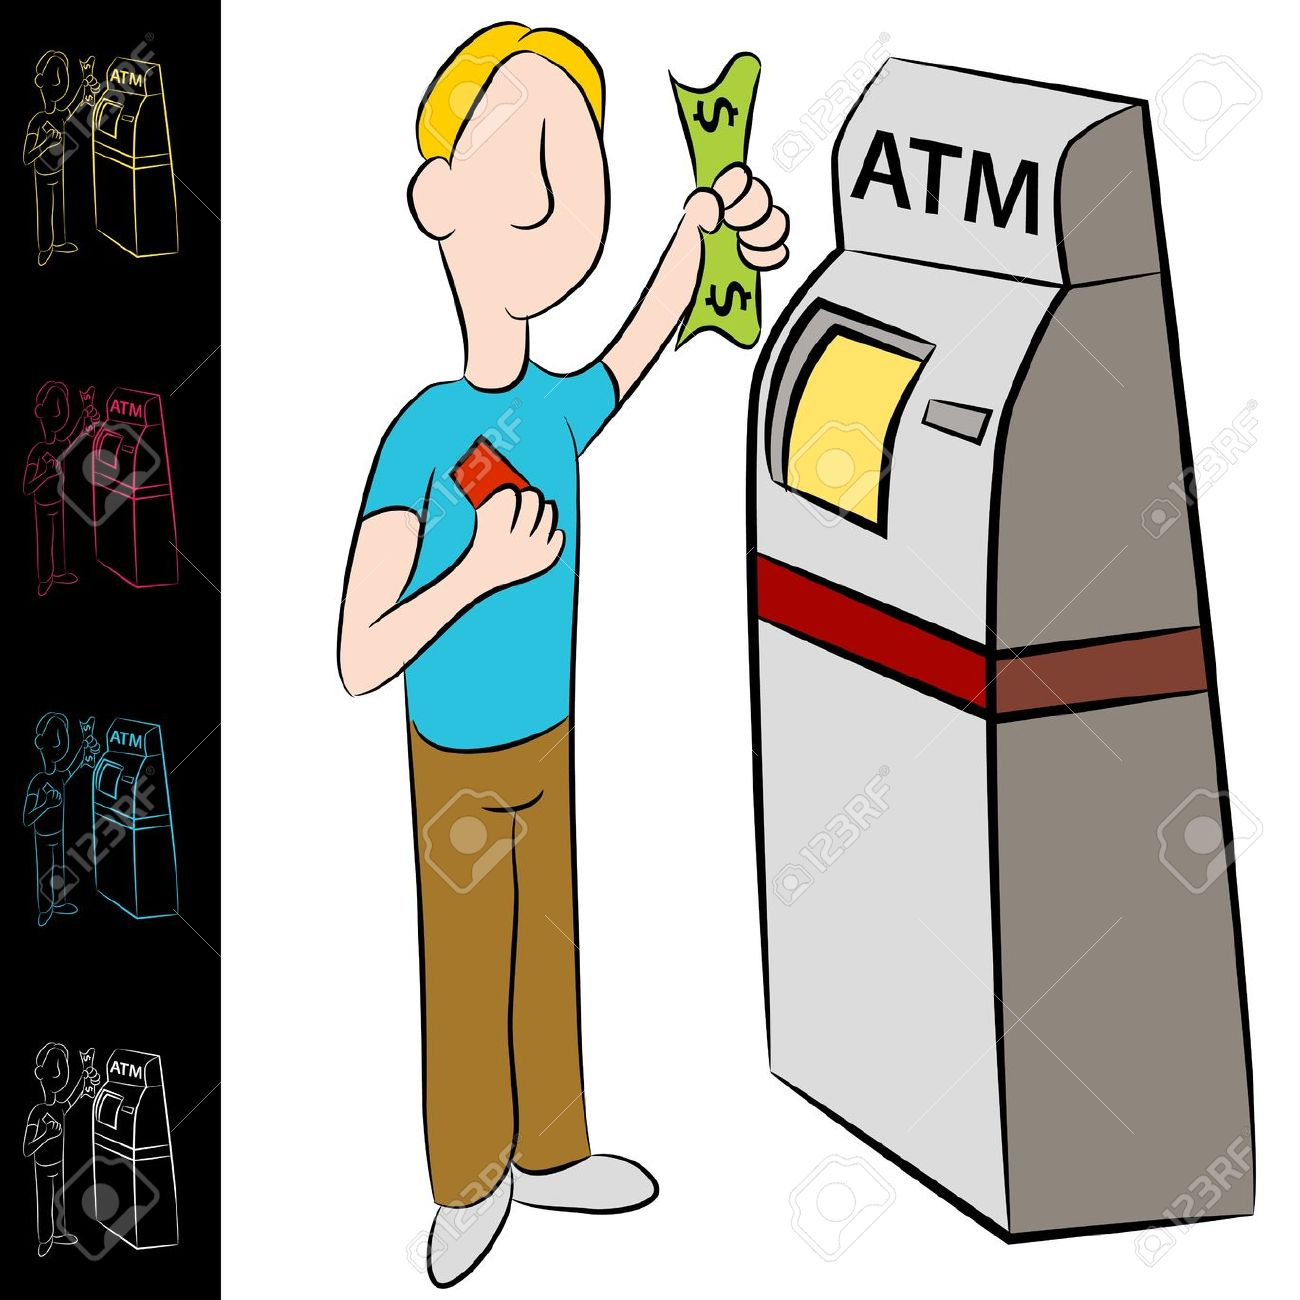 Bank deposit clipart. An image of a